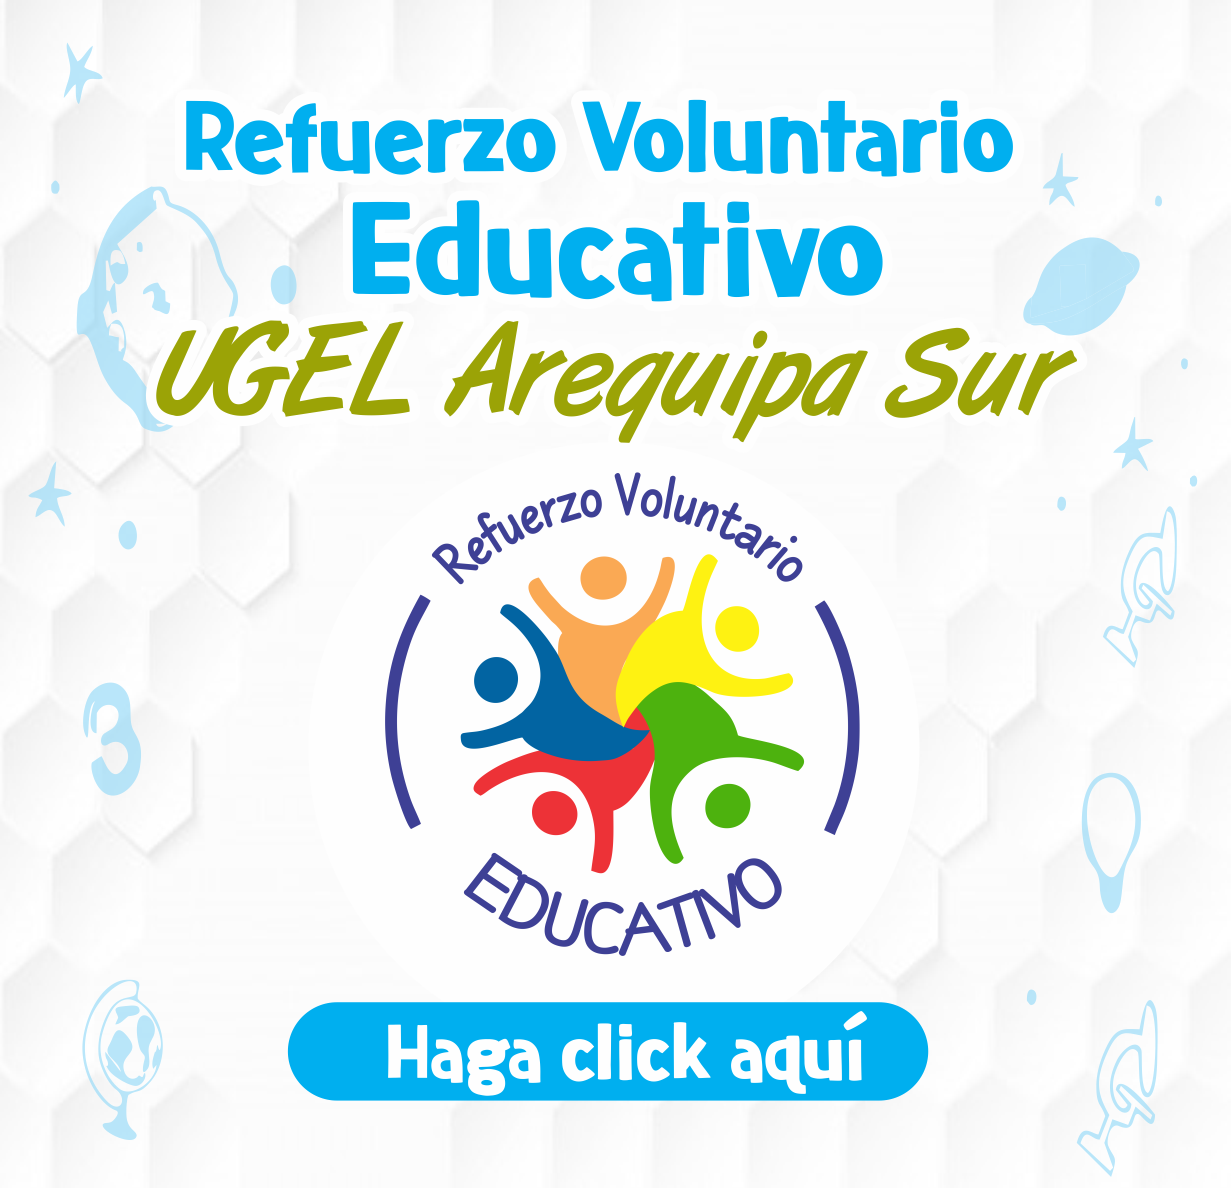 REFUERZO VOLUNTARIO EDUCATIVO